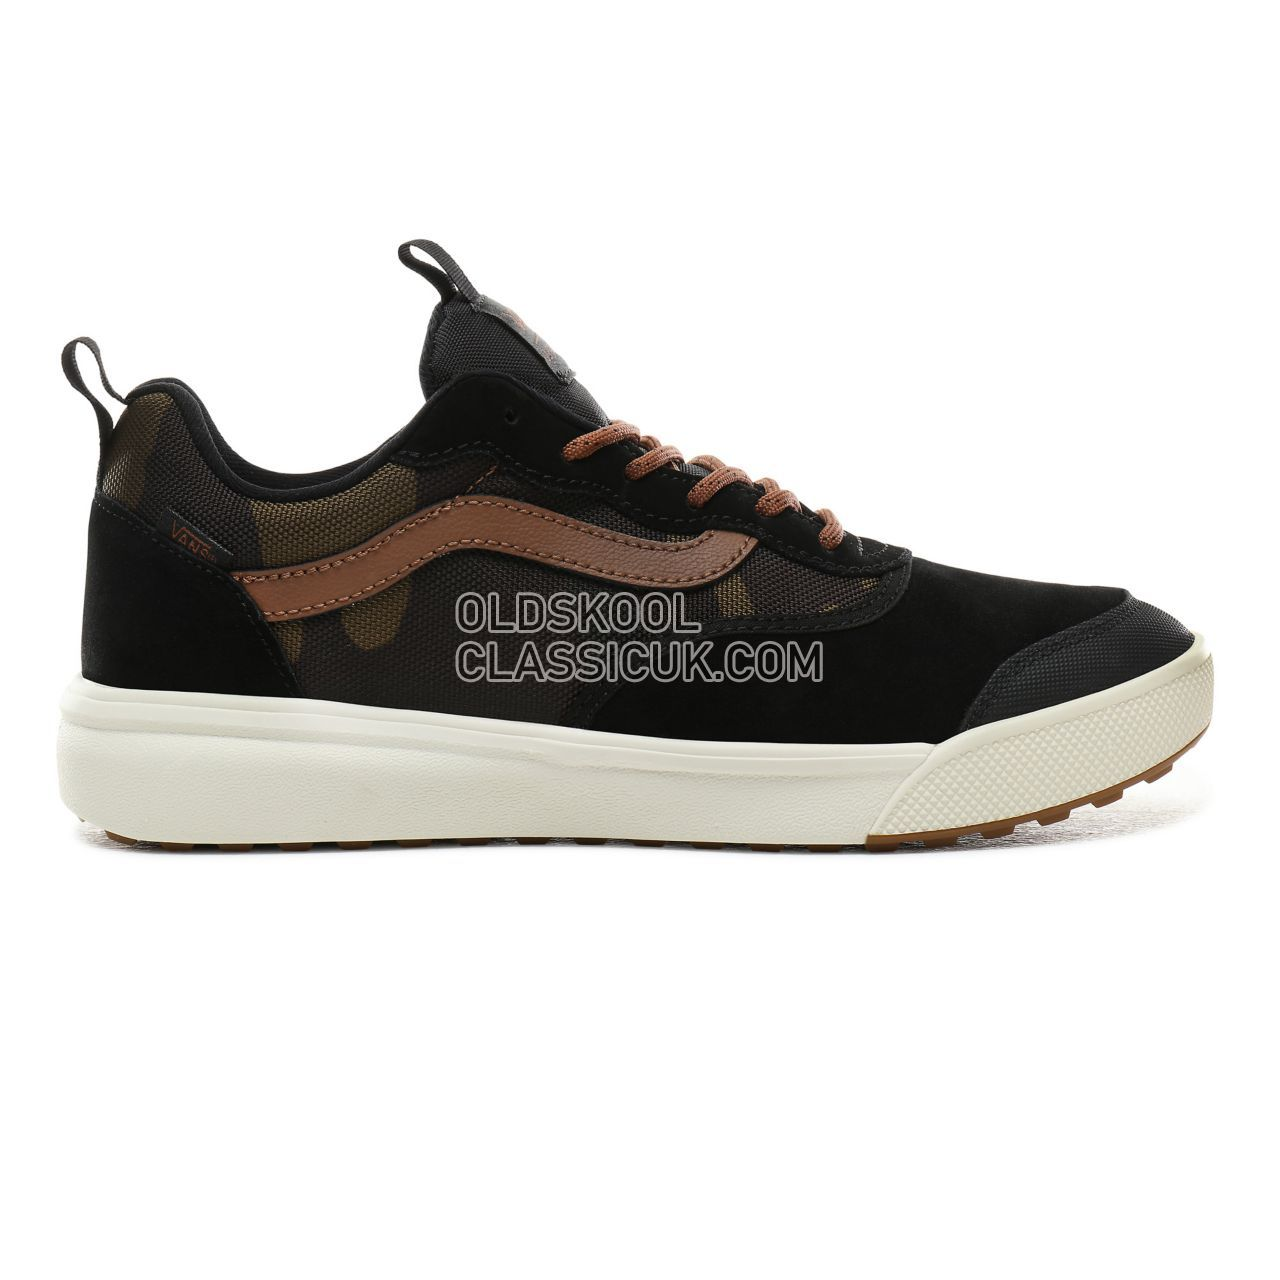 Vans Ultrarange Sneakers Mens Black/Dachshund VN0A3NASQ3Y Shoes